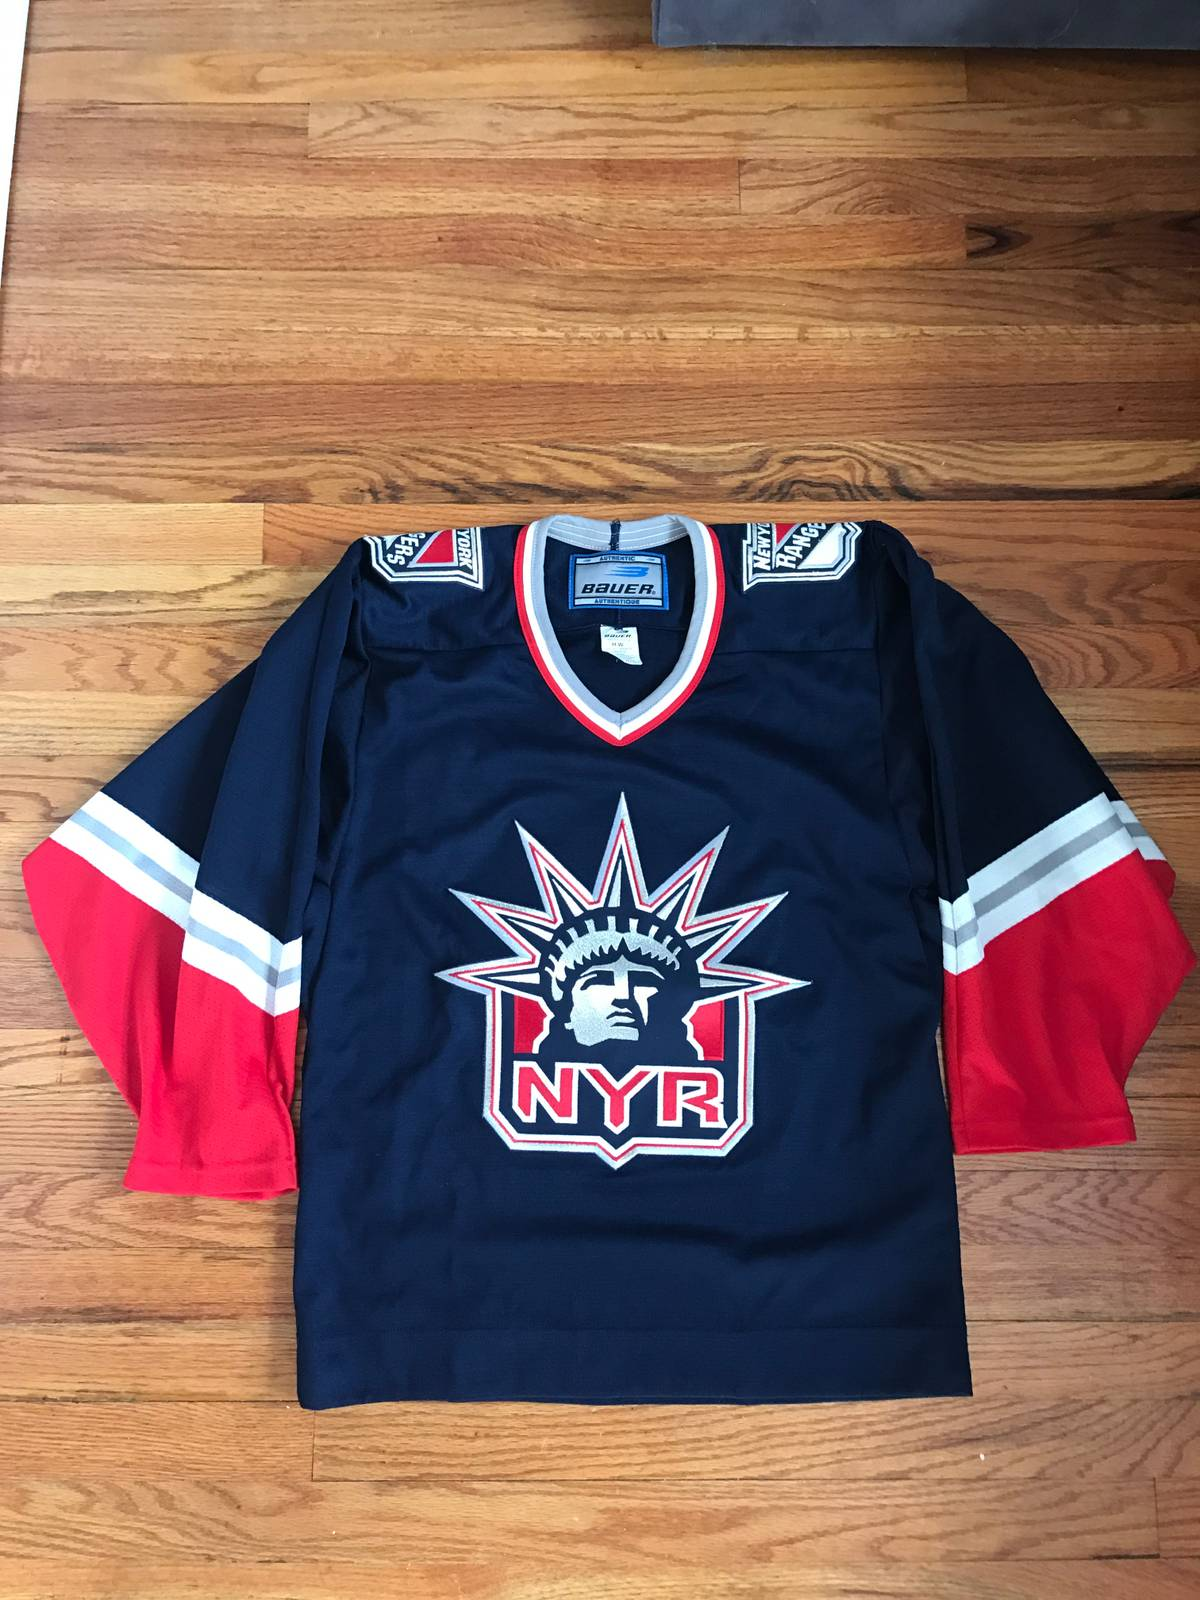 Vintage New York Rangers Lady Liberty 90s Vintage Jersey Size Small Men s  Size s - Jerseys for Sale - Grailed 0da9cf1d9